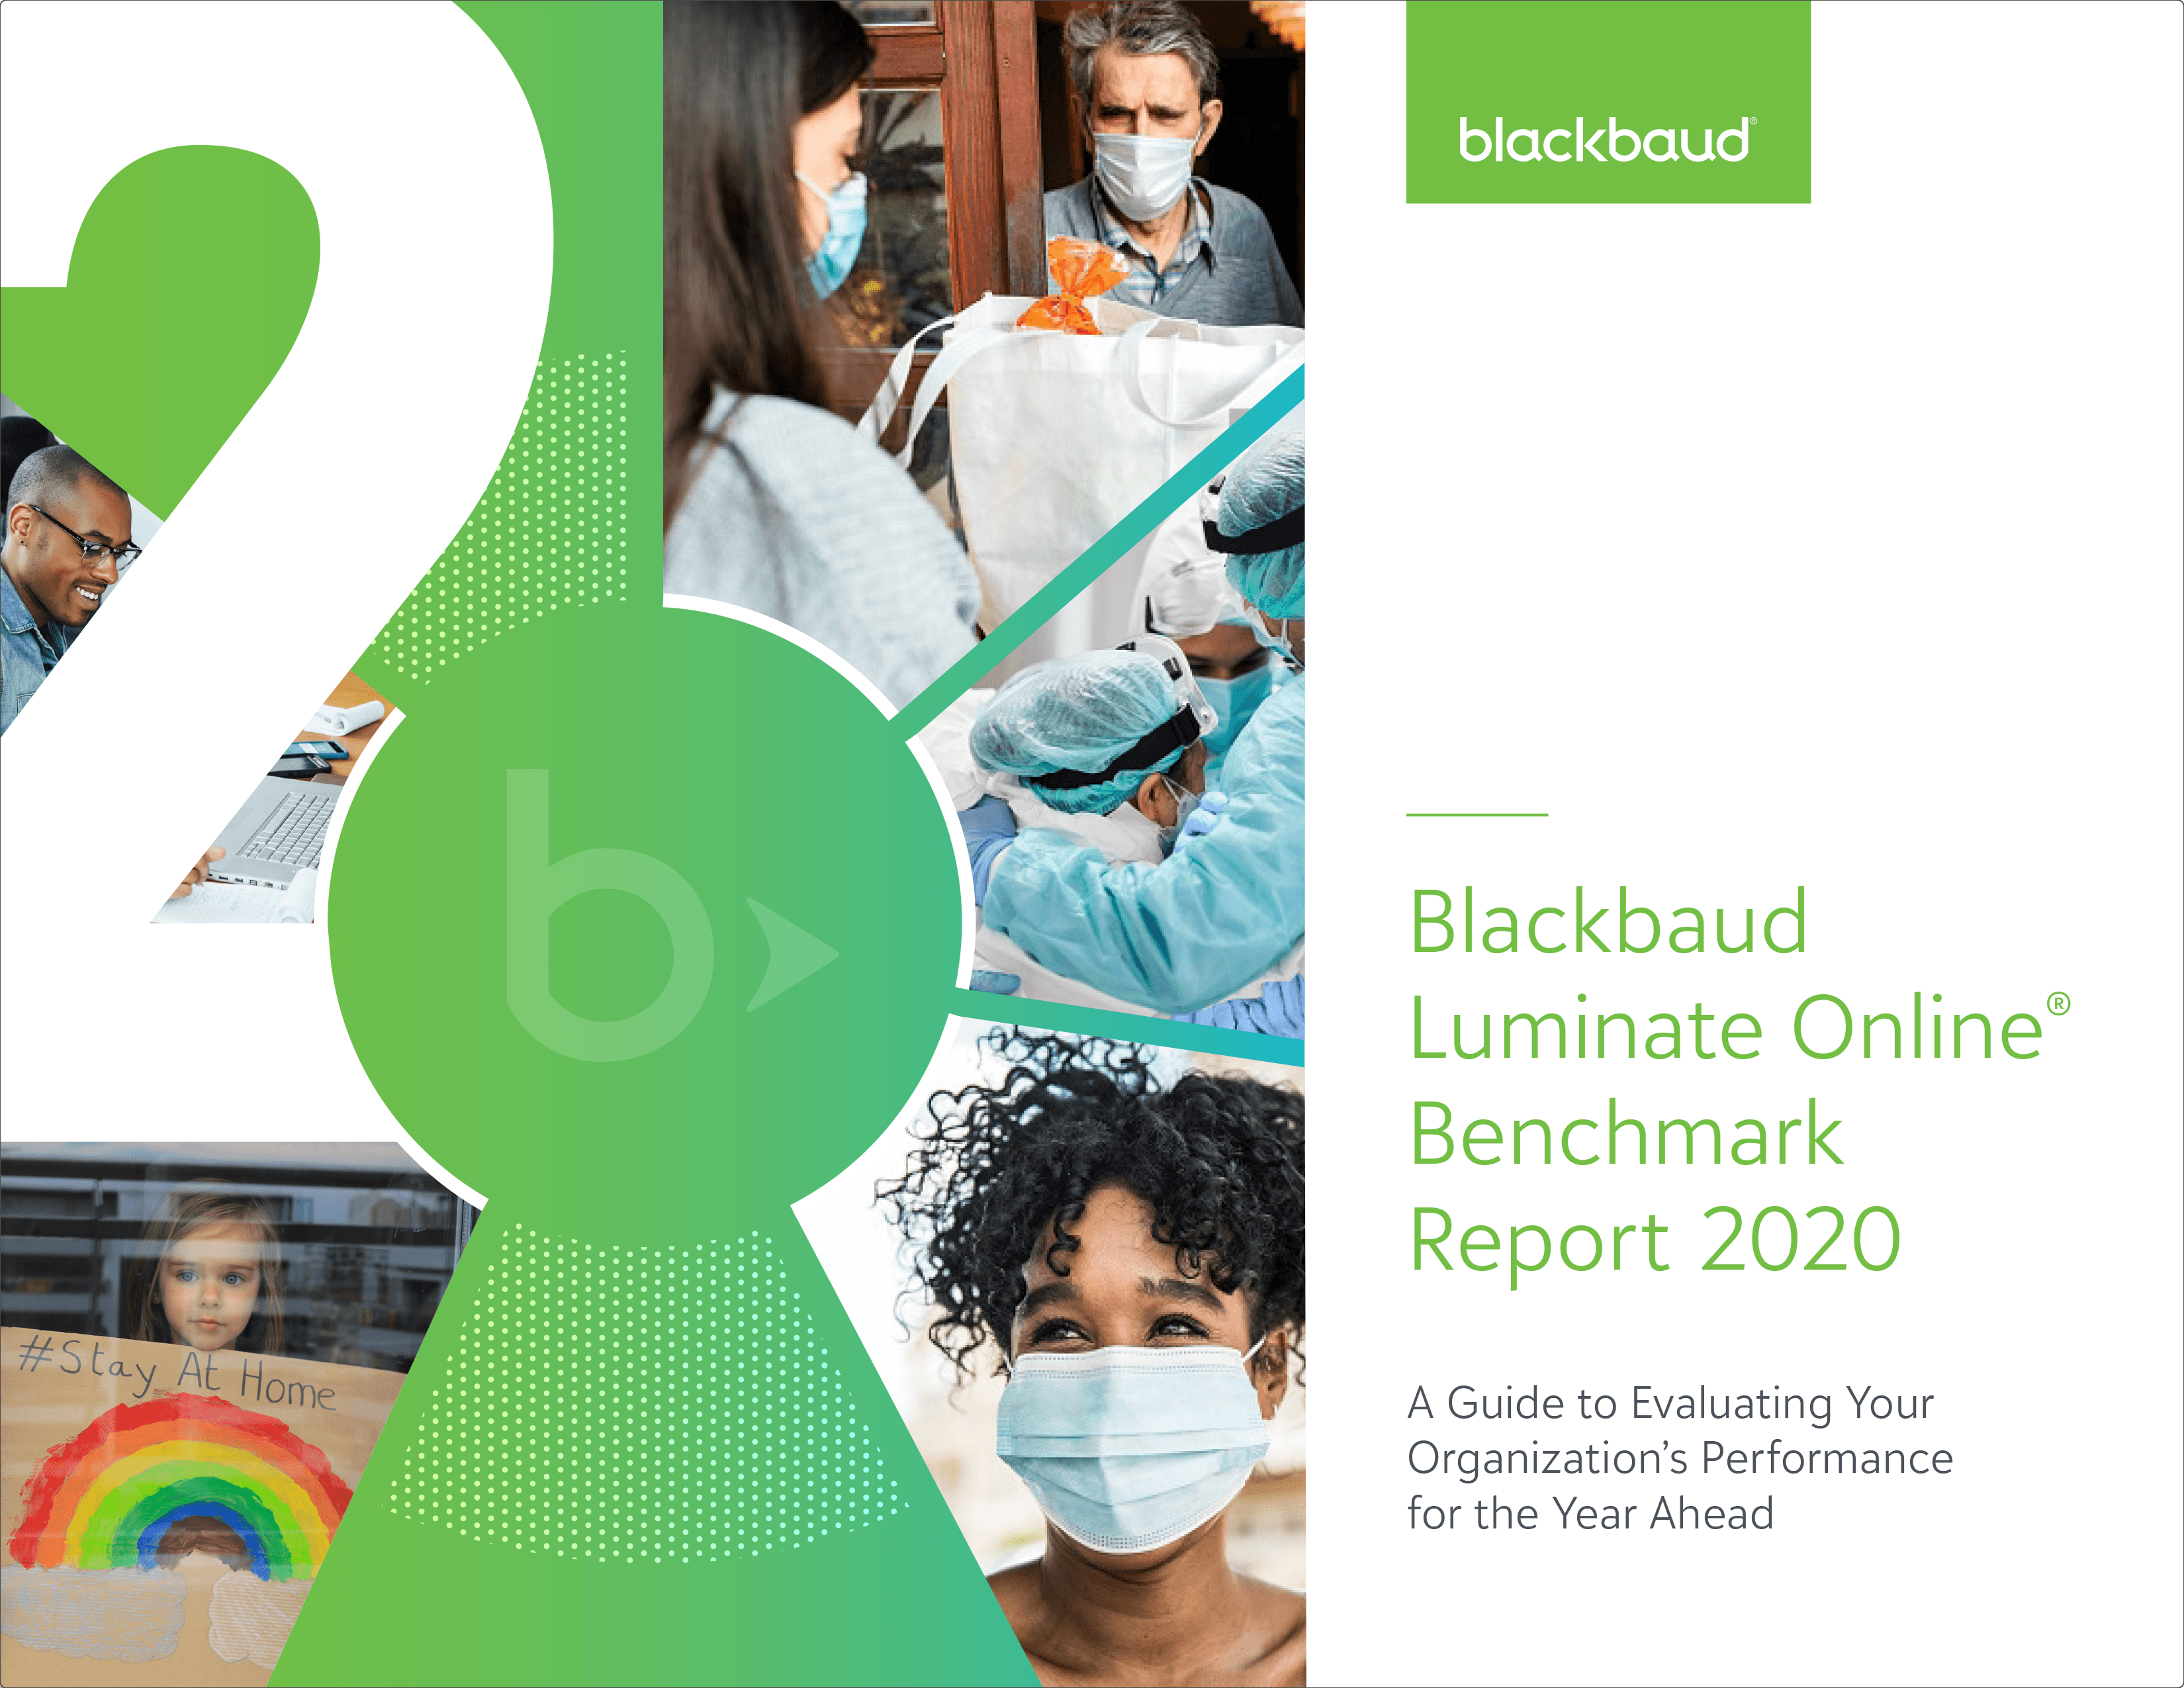 Image of benchmark report cover